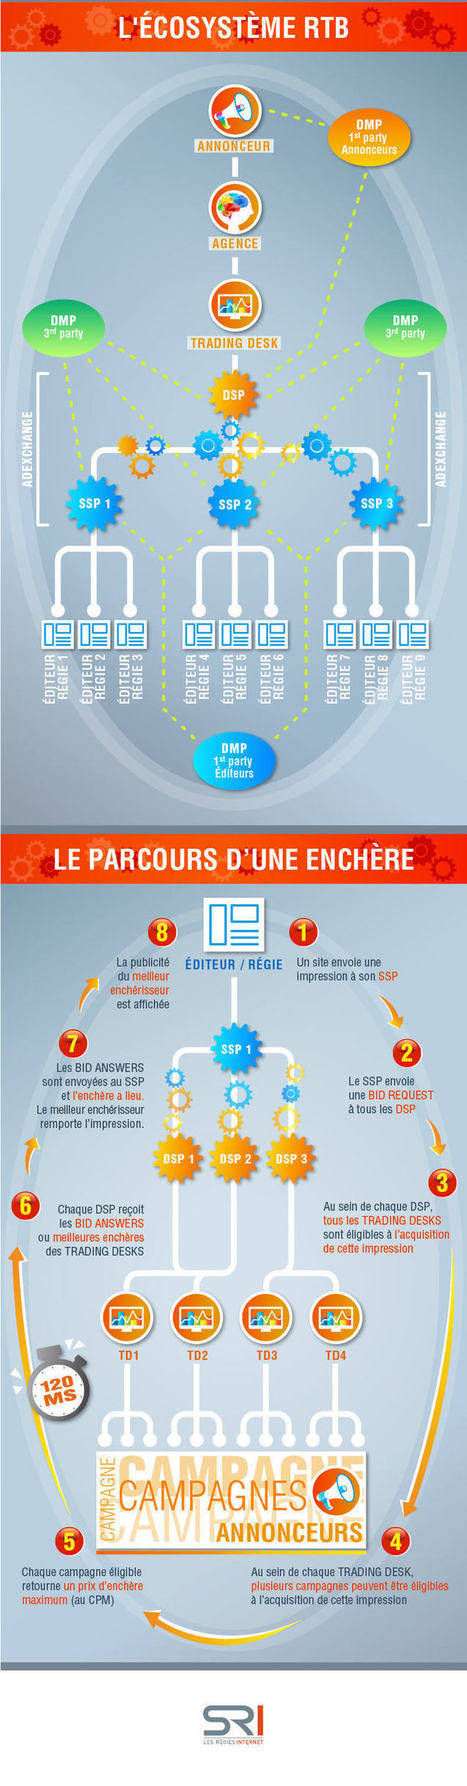 Infographie : comprendre le RTB en image | Mass marketing innovations | Scoop.it